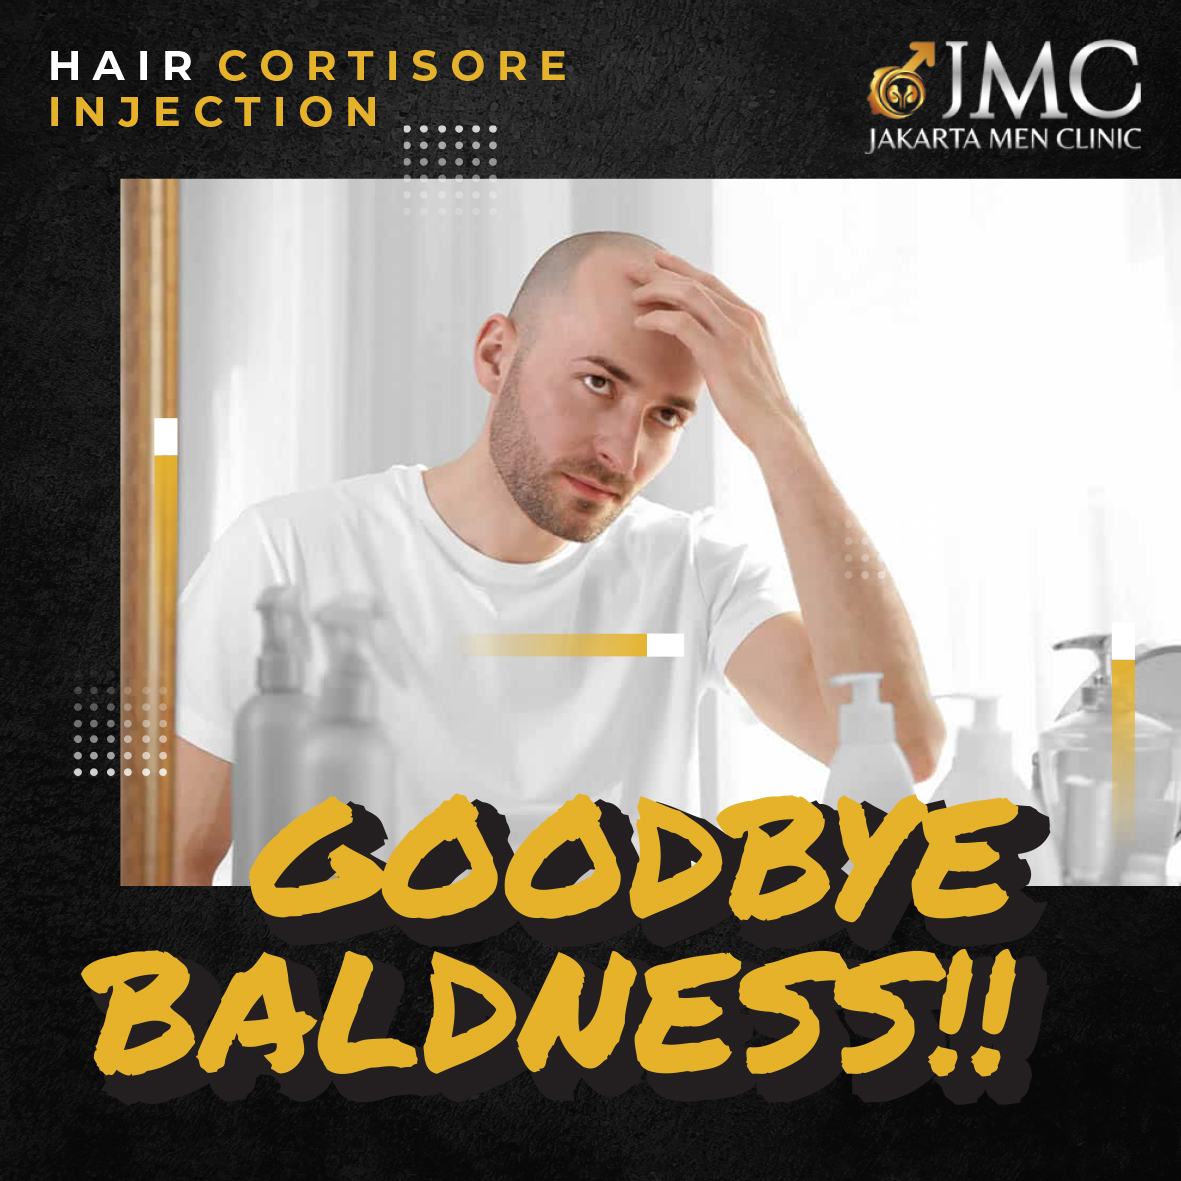 HAIR CORTISORE INJECTION